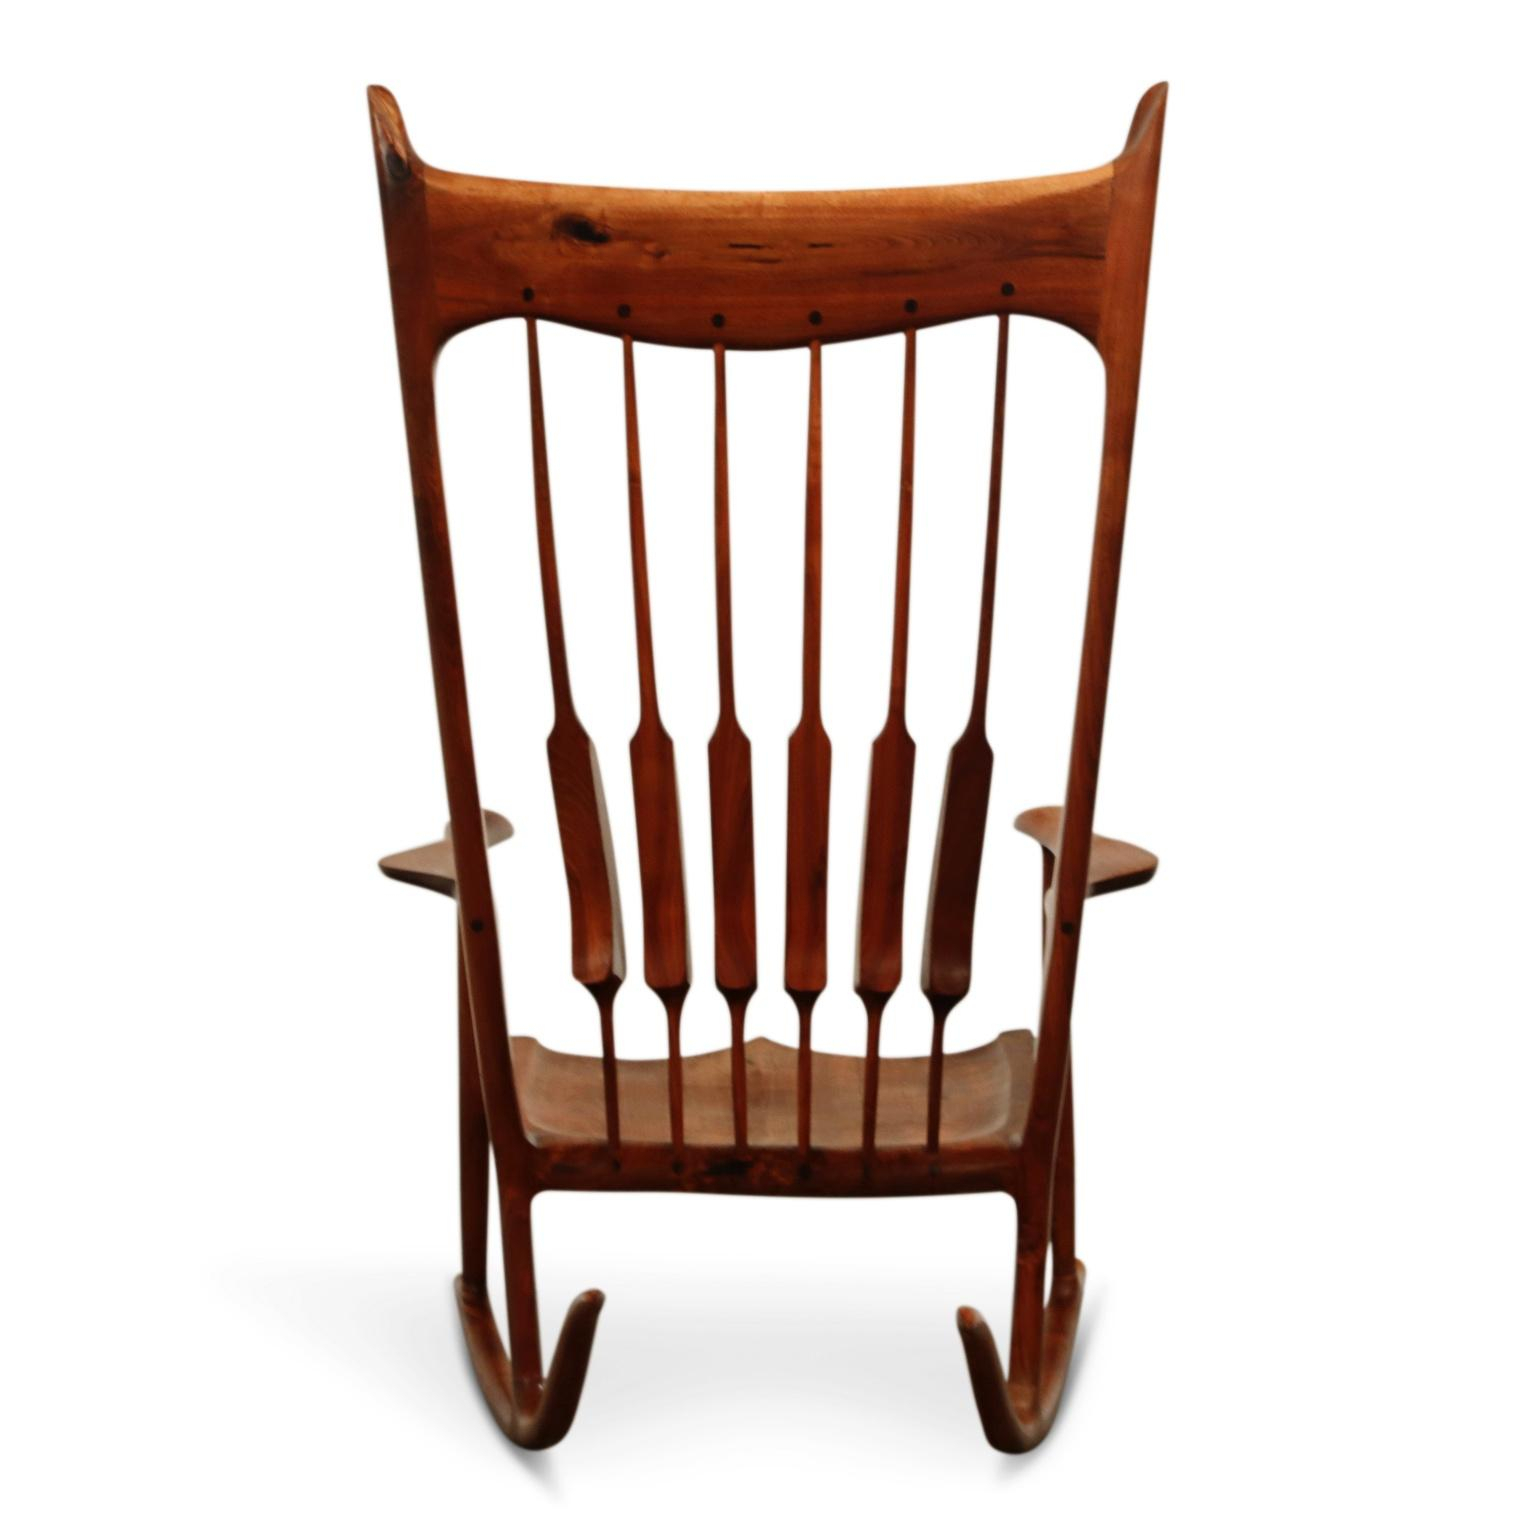 Large Scale Sam Maloof Style Studio Craftsman Rocking Chair, Signed And Dated Within Rosewood Traditional Dark Oak Rocking Accent Chairs (View 13 of 20)